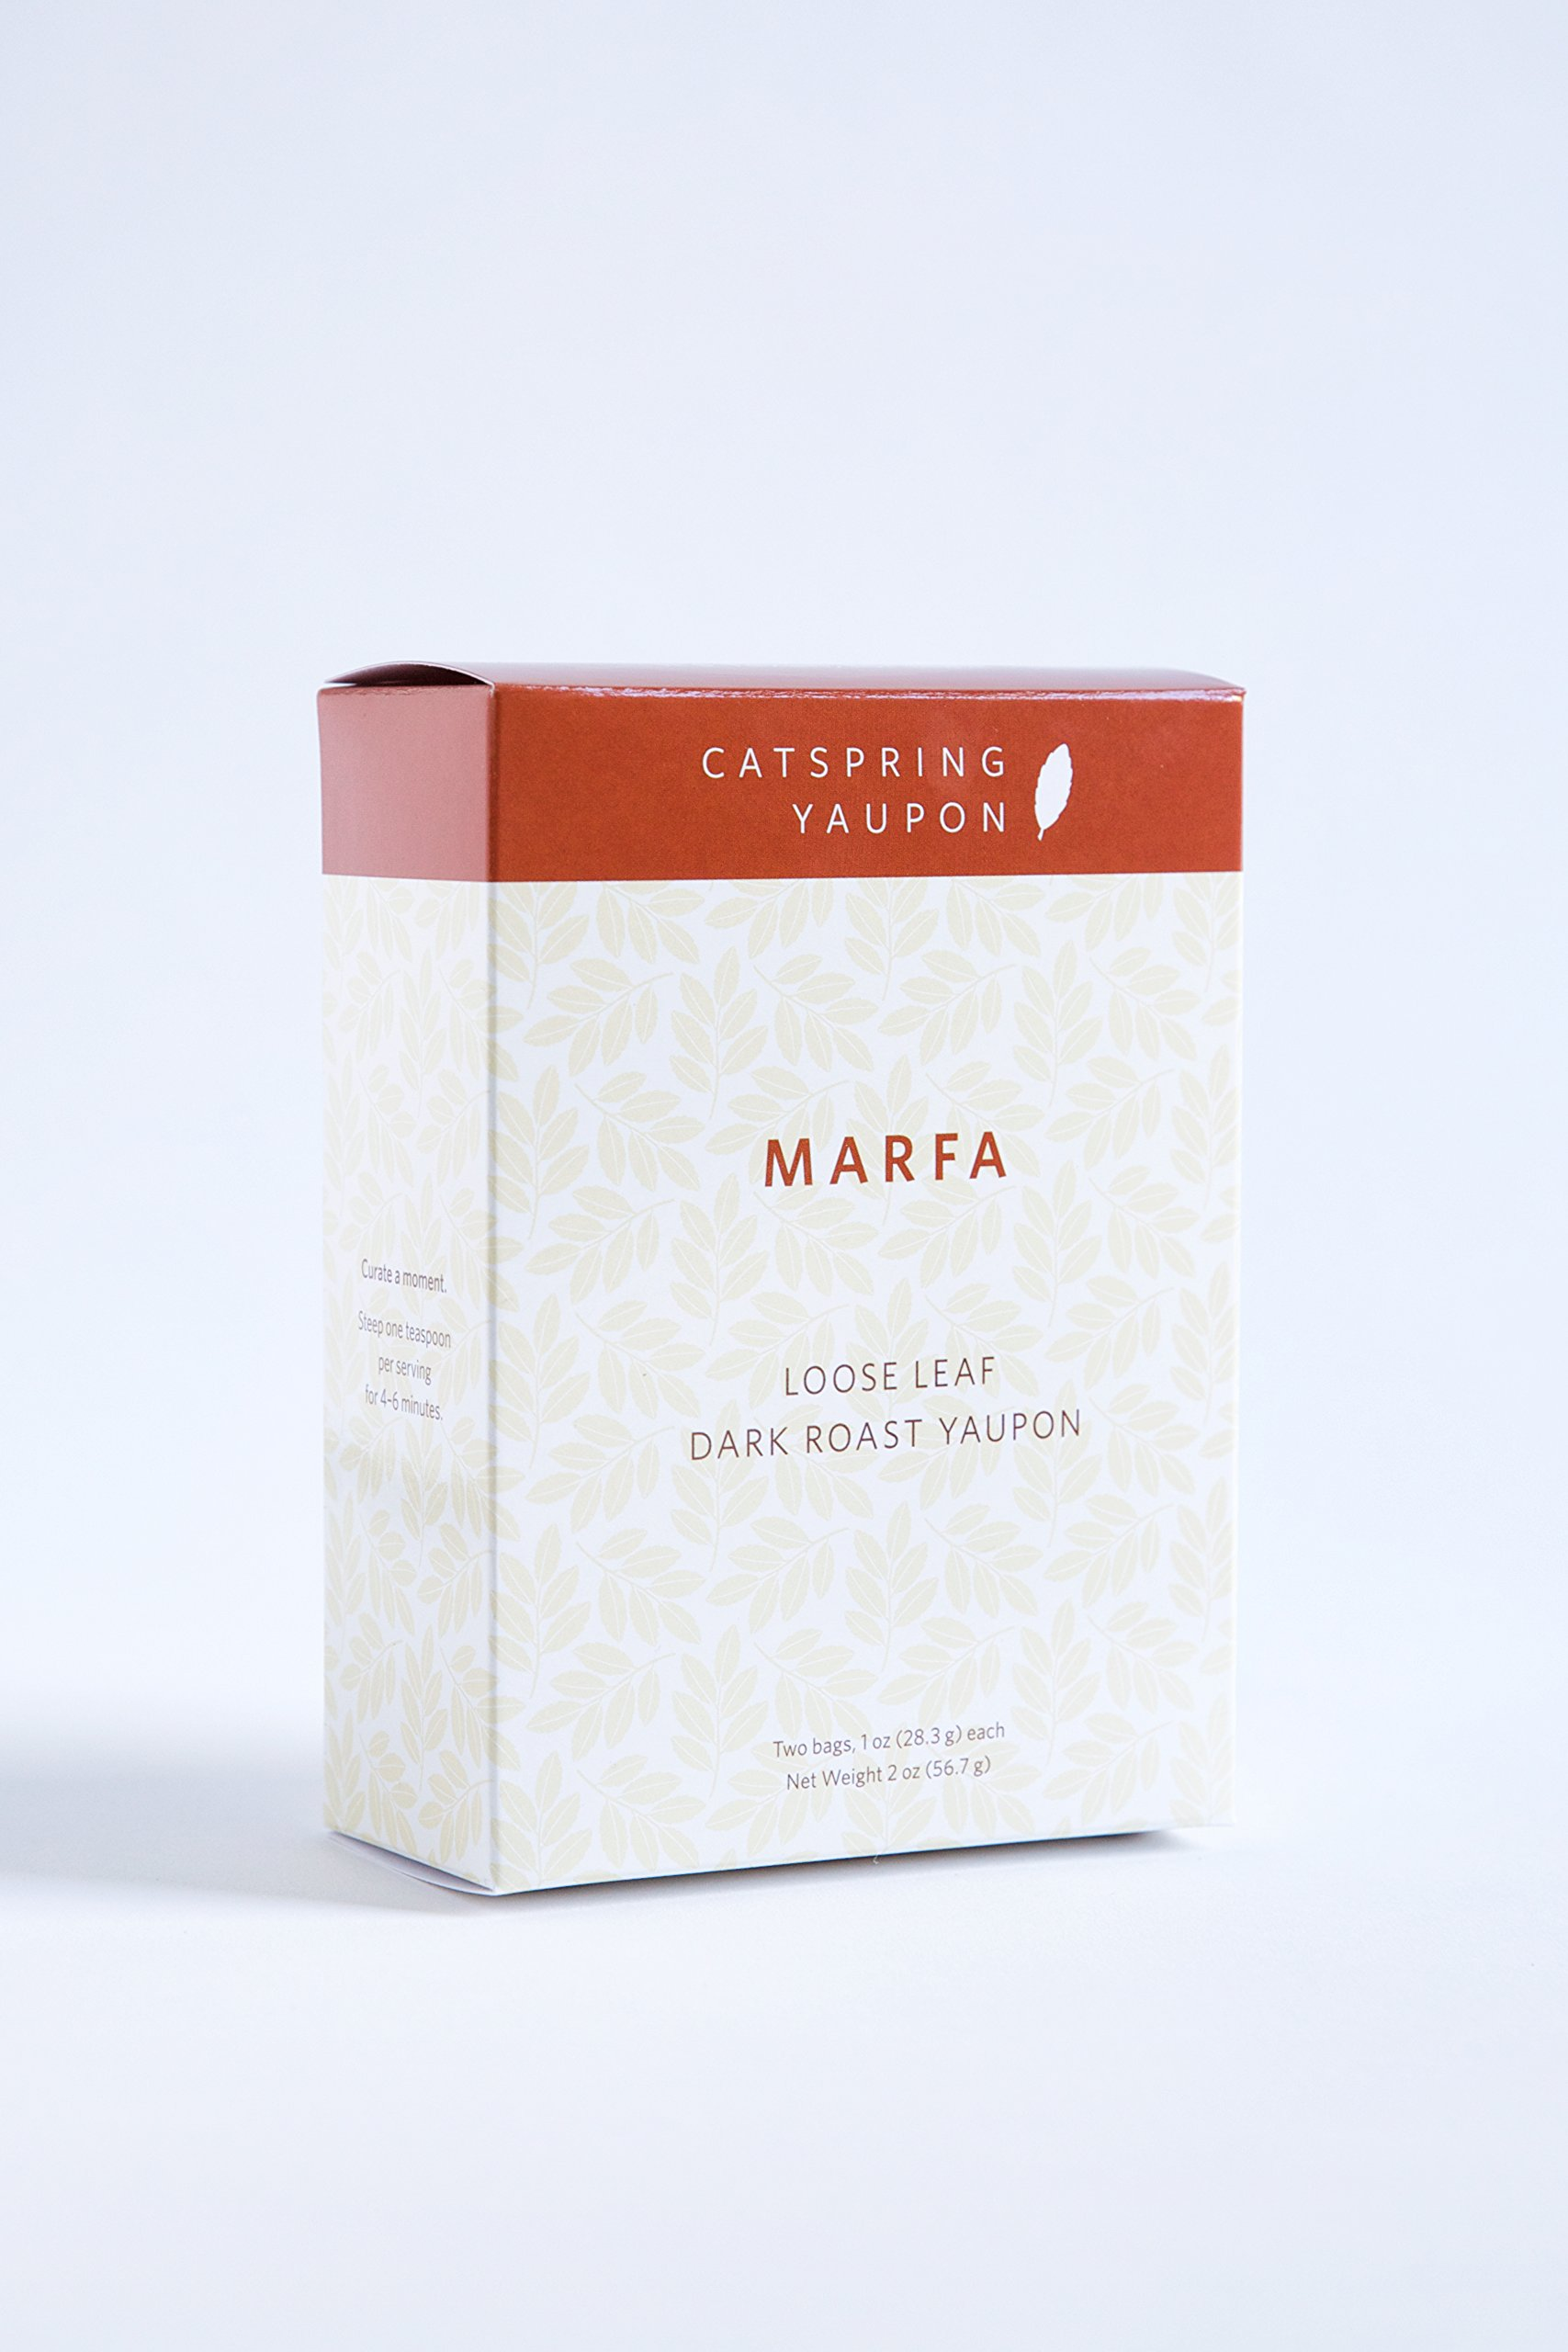 CatSpring Yaupon - Marfa Dark Roast Black Yaupon Tea - Loose Leaf - Naturally Caffeinated, Herbal and Sustainable - Dark Roast Yaupon Grown, Harvest and Made in the USA {2 oz.}